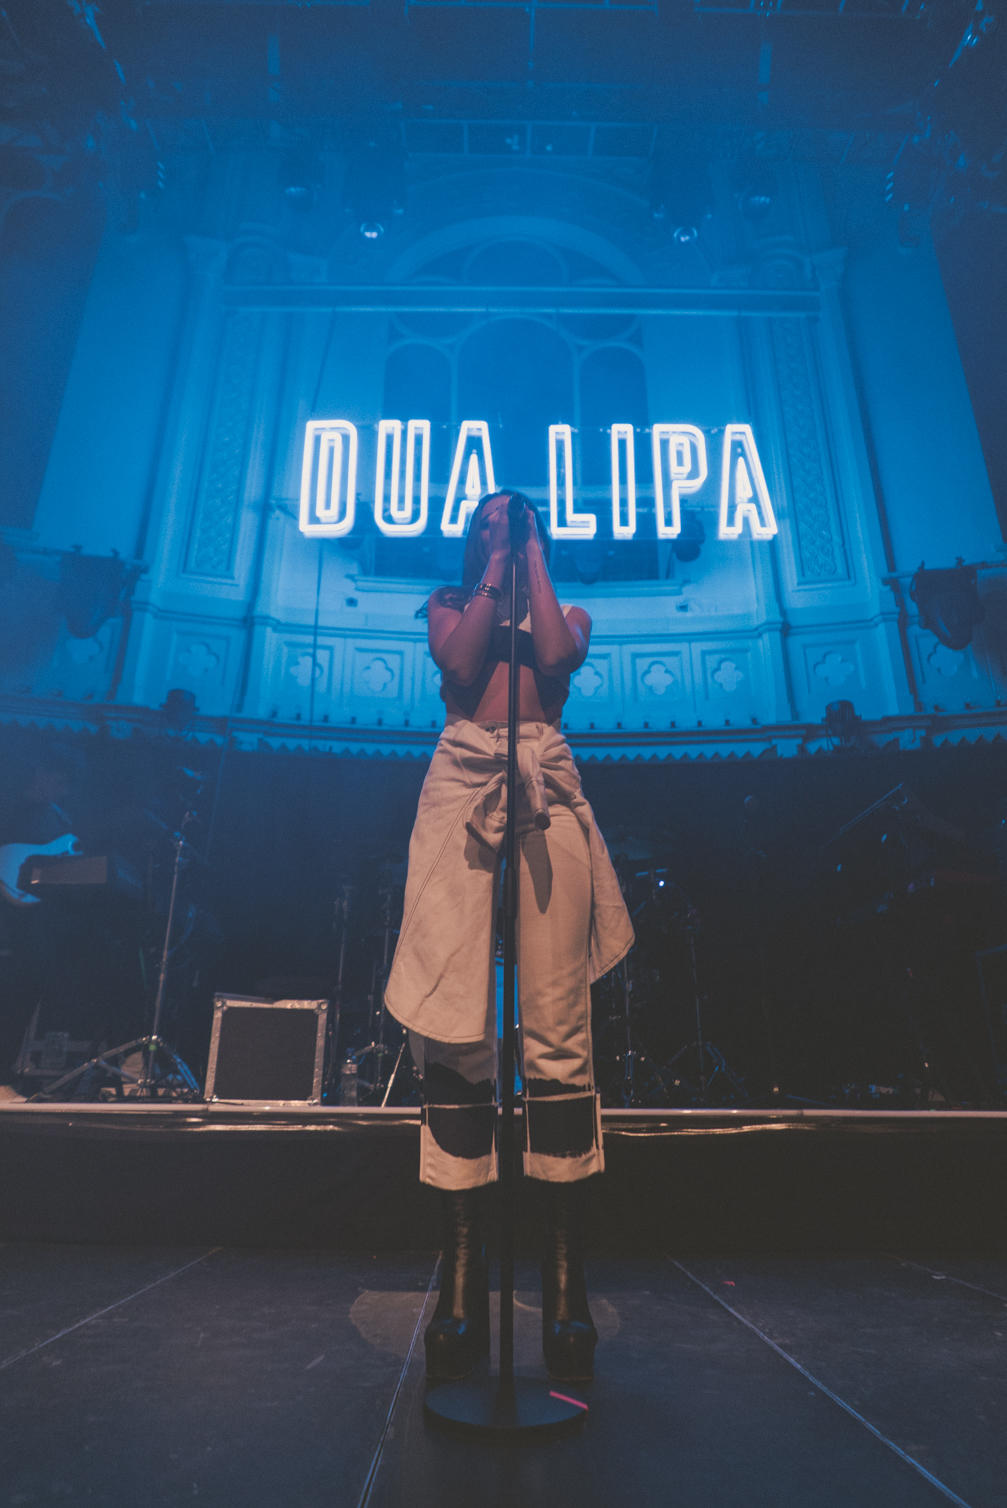 dua-lipa-amsterdam-by-pawel-ptak-22-of-38